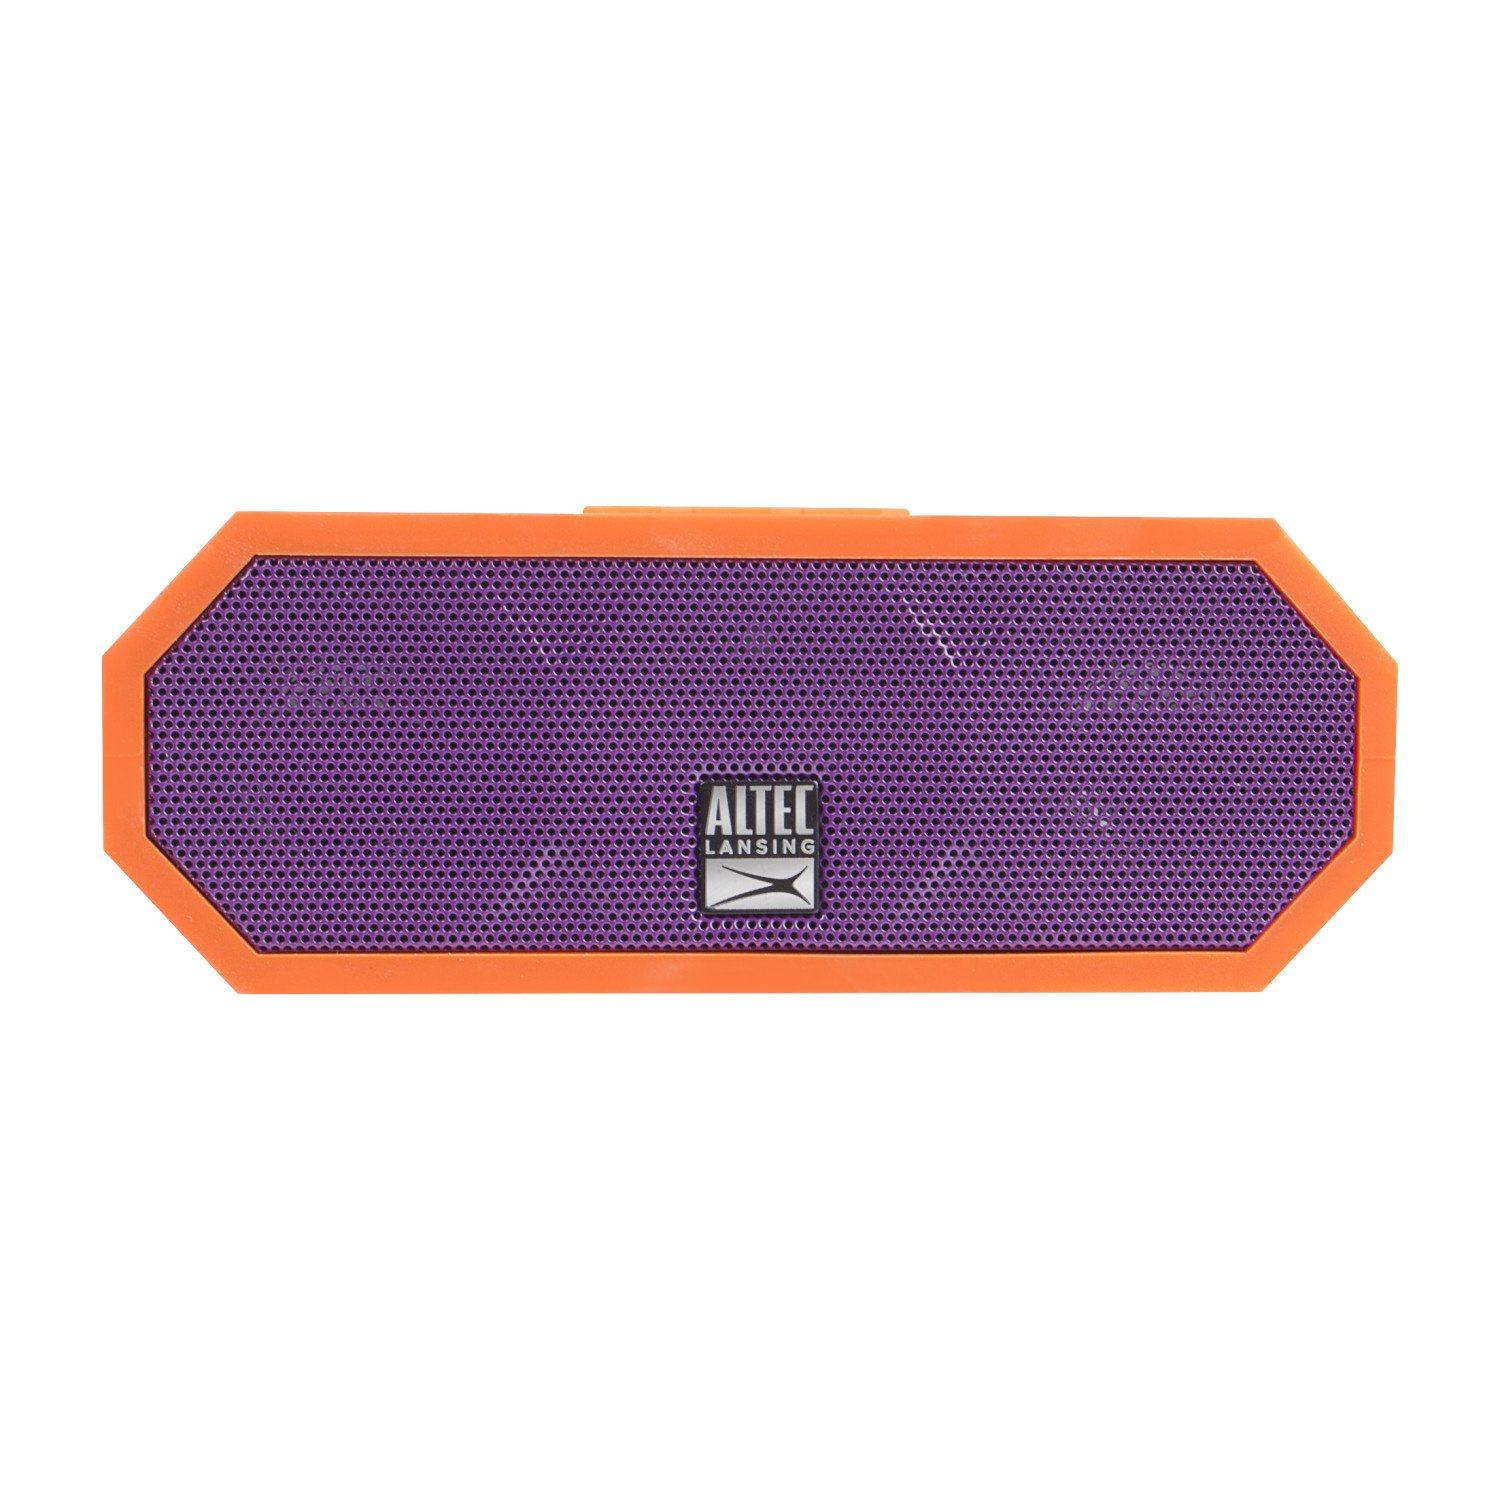 Altec Lansing IMW448-ORP Jacket H2O 3 Wireless Bluetooth Waterproof Floatable Speaker with 100 Wireless Range, 10 Hours of Battery Life, and Stereo Pairing, Orange/Purple